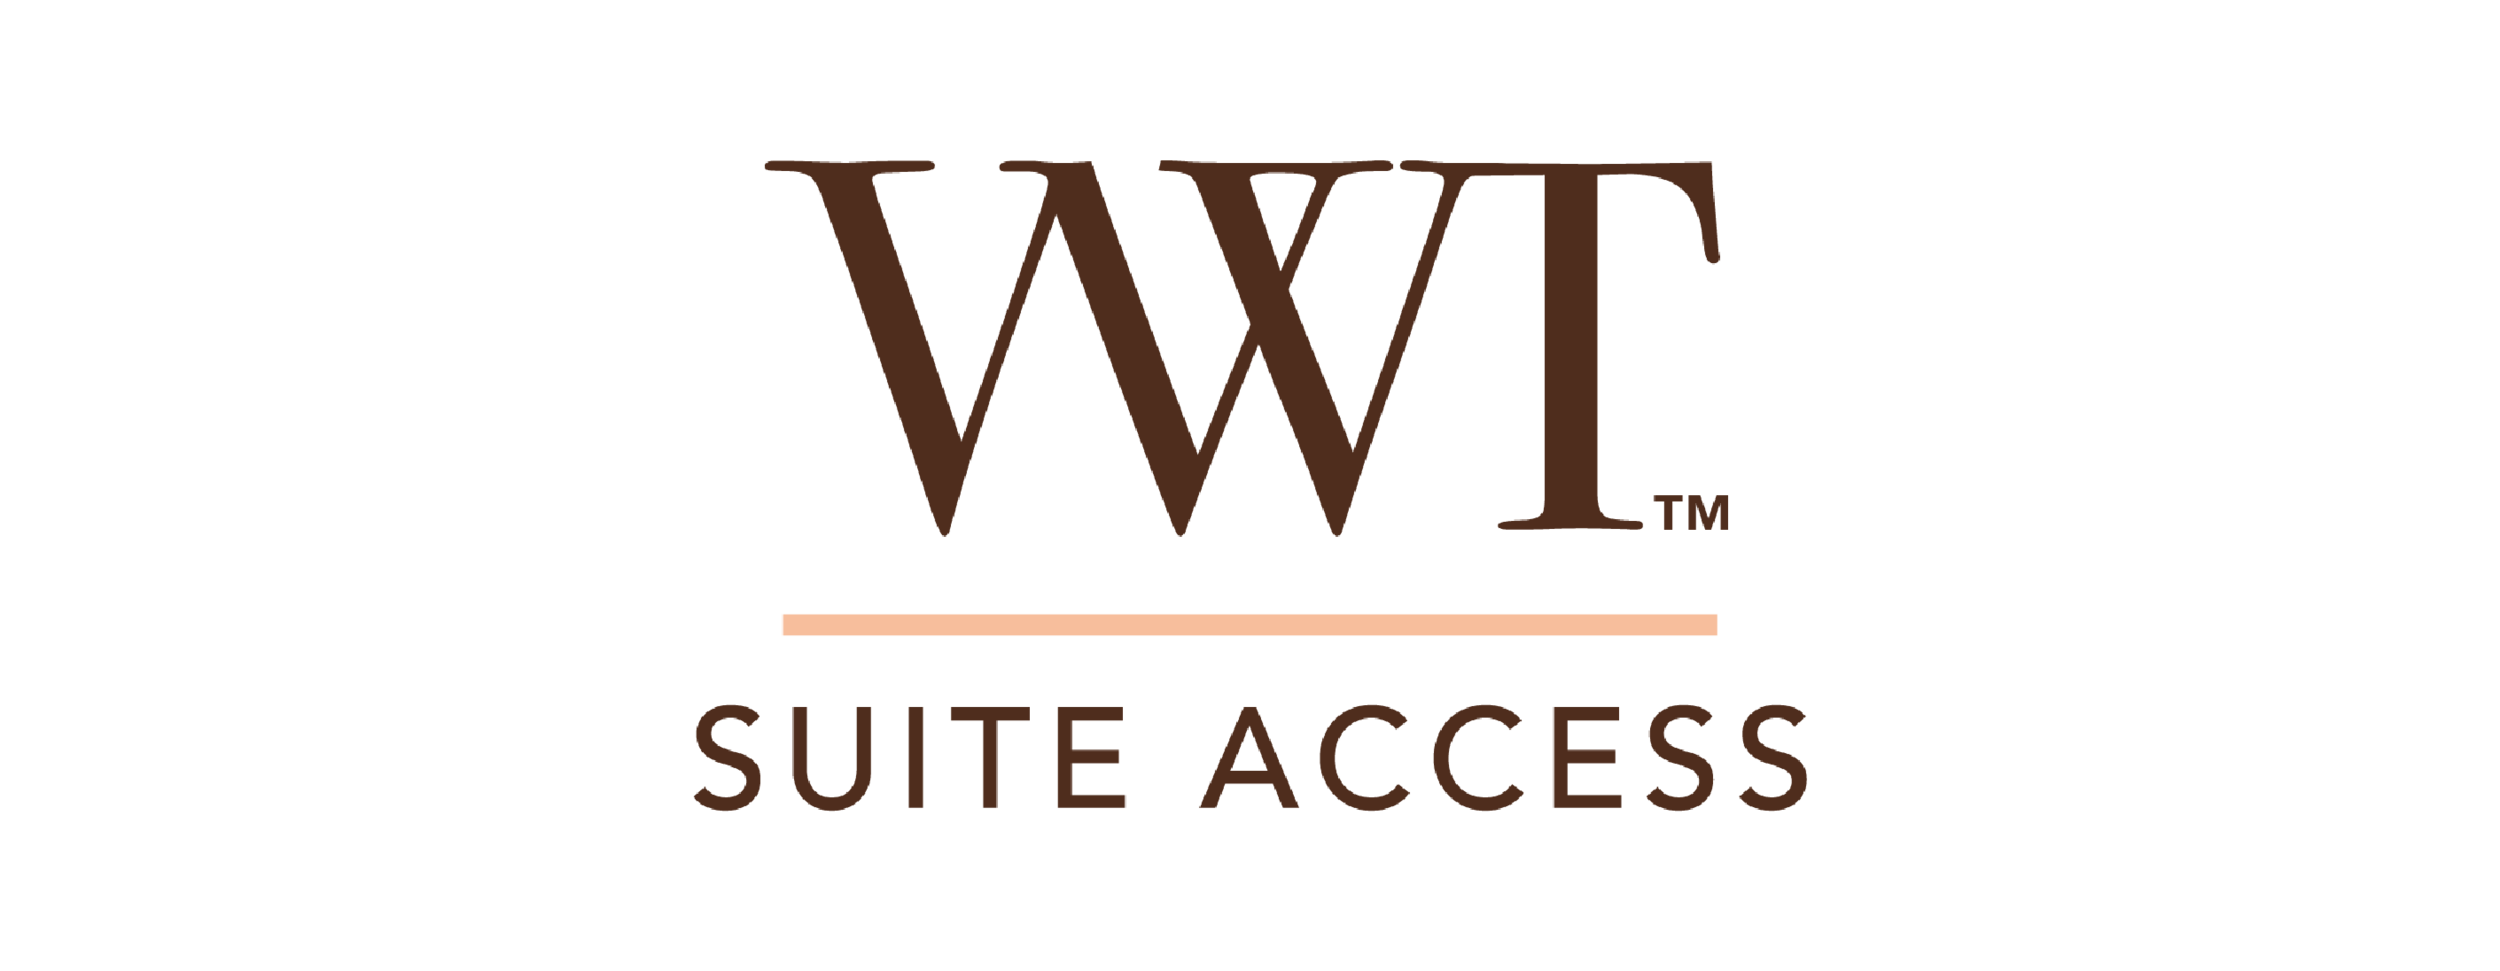 Suite Access (website)-01-01-01.png